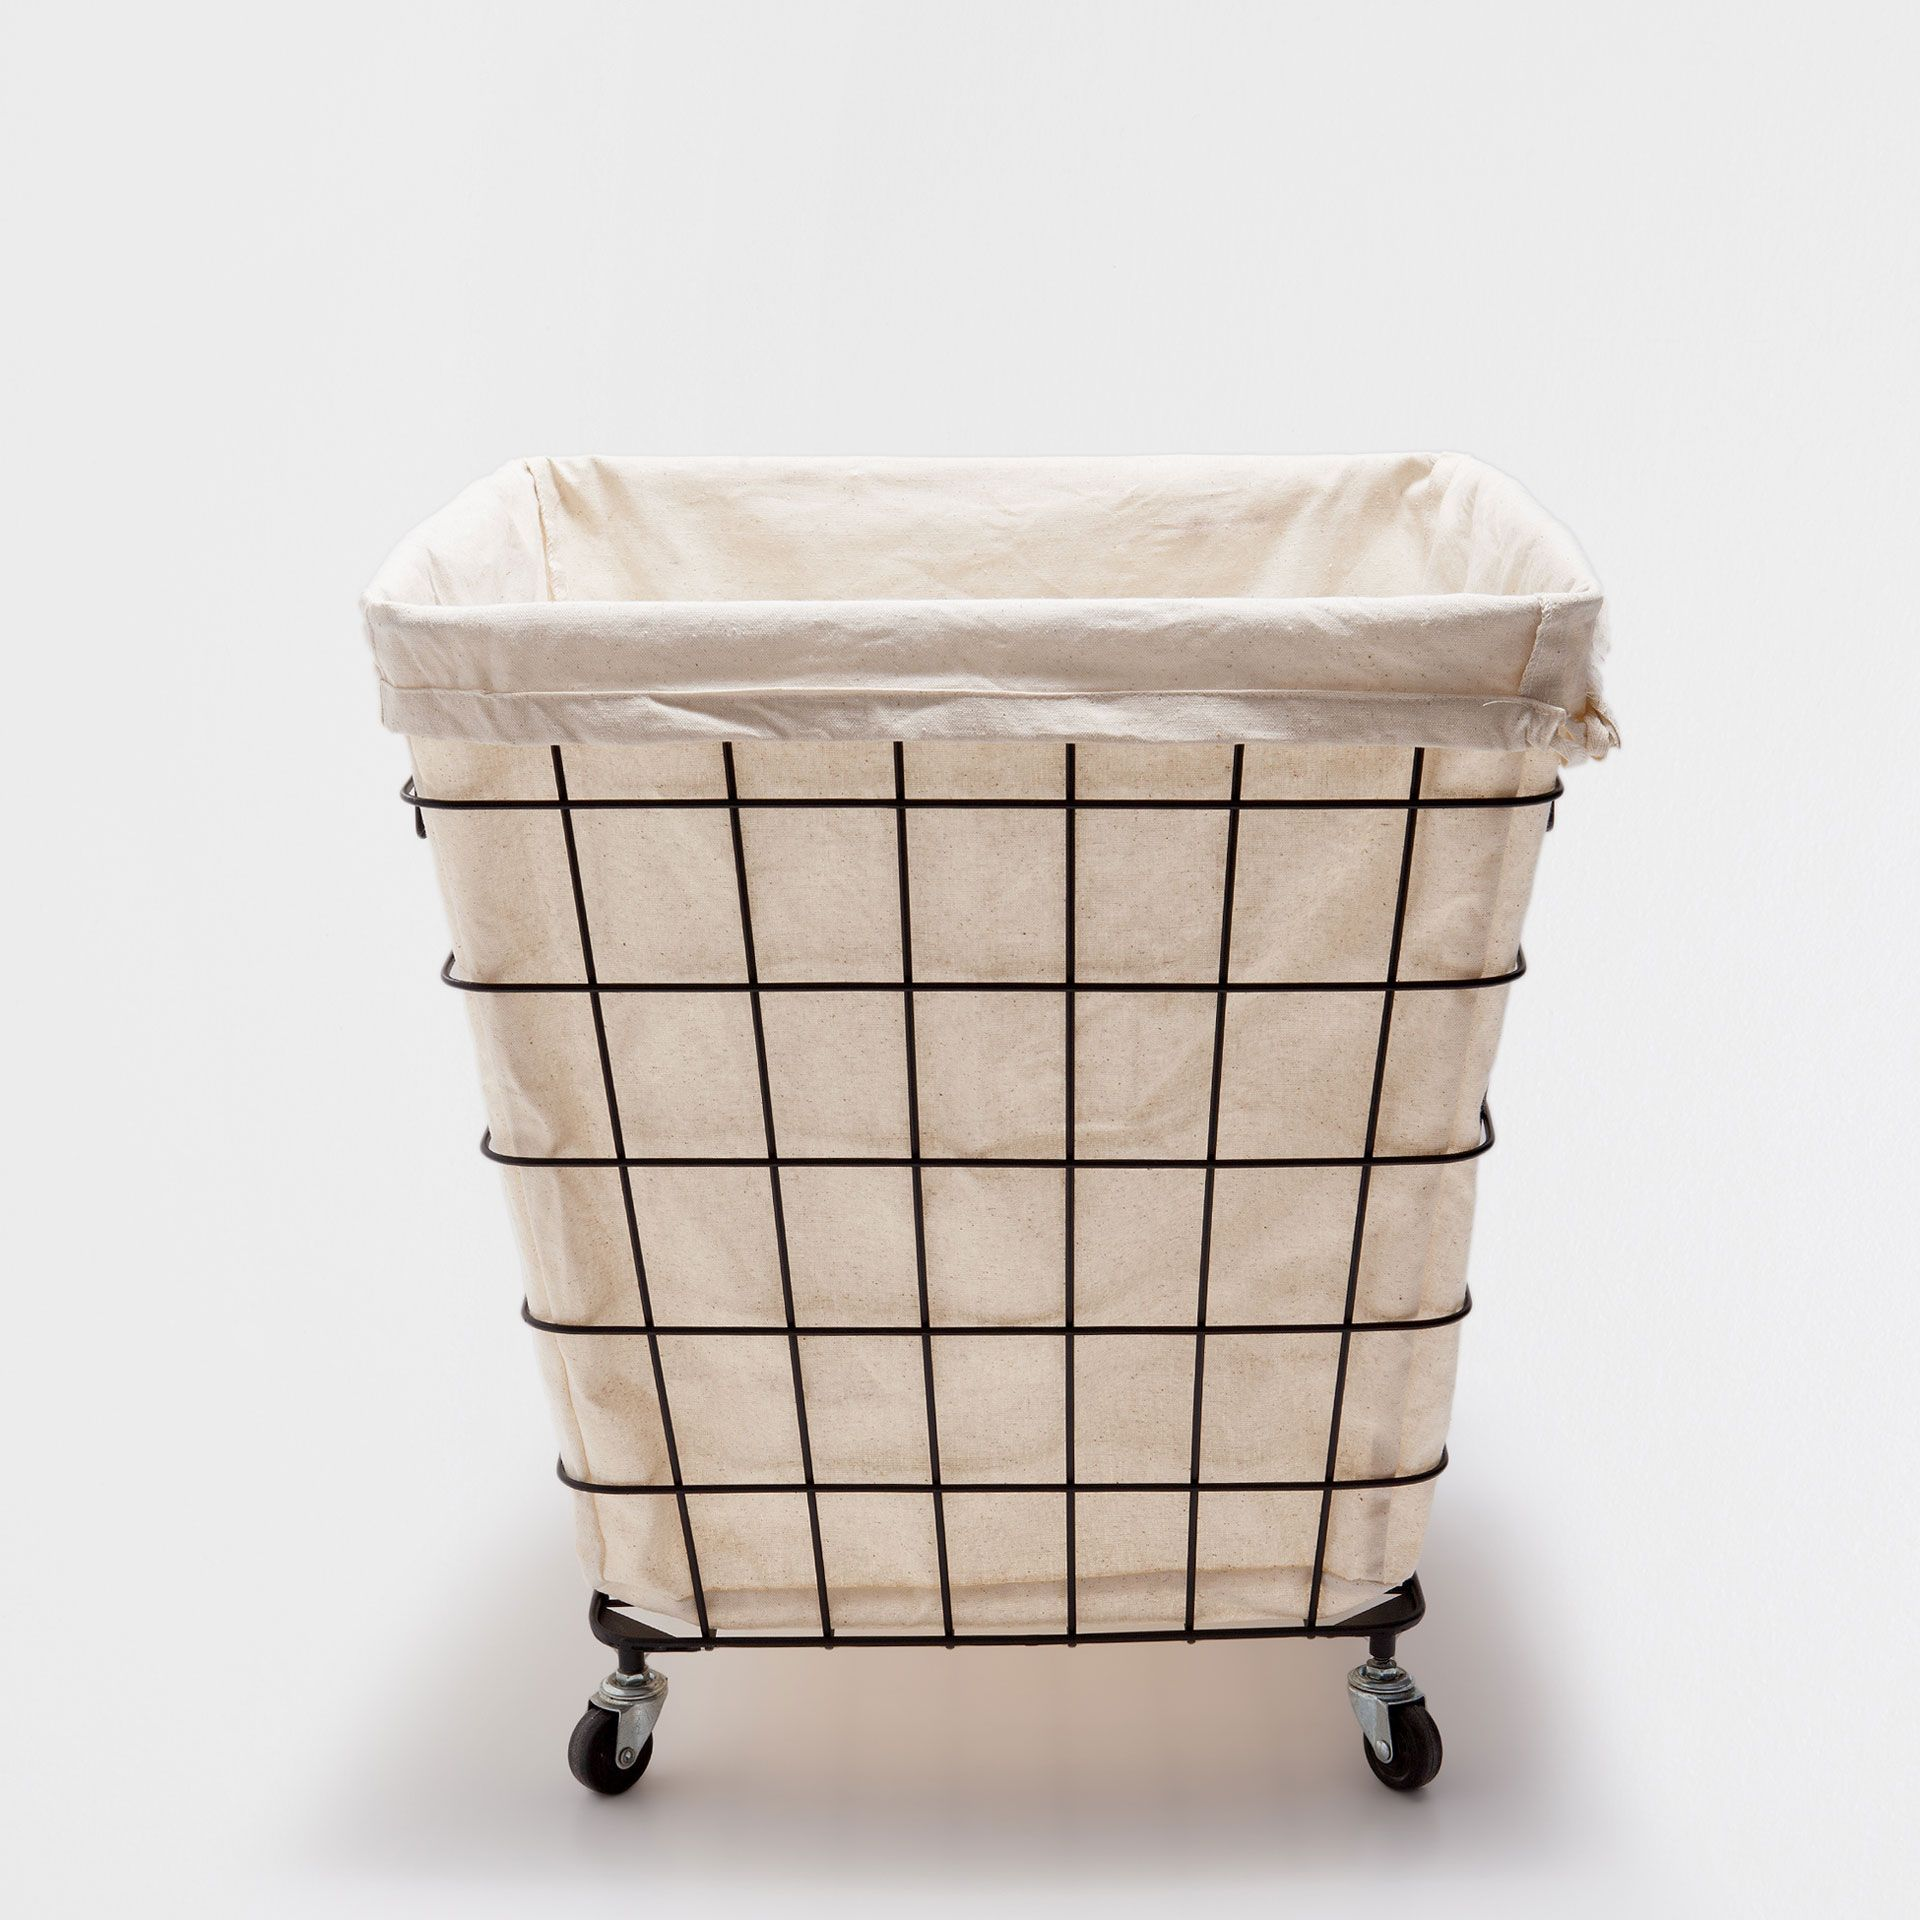 Wäschekorb Jysk Mesh Clothes Basket With Wheels Denenecek Projeler Clothes